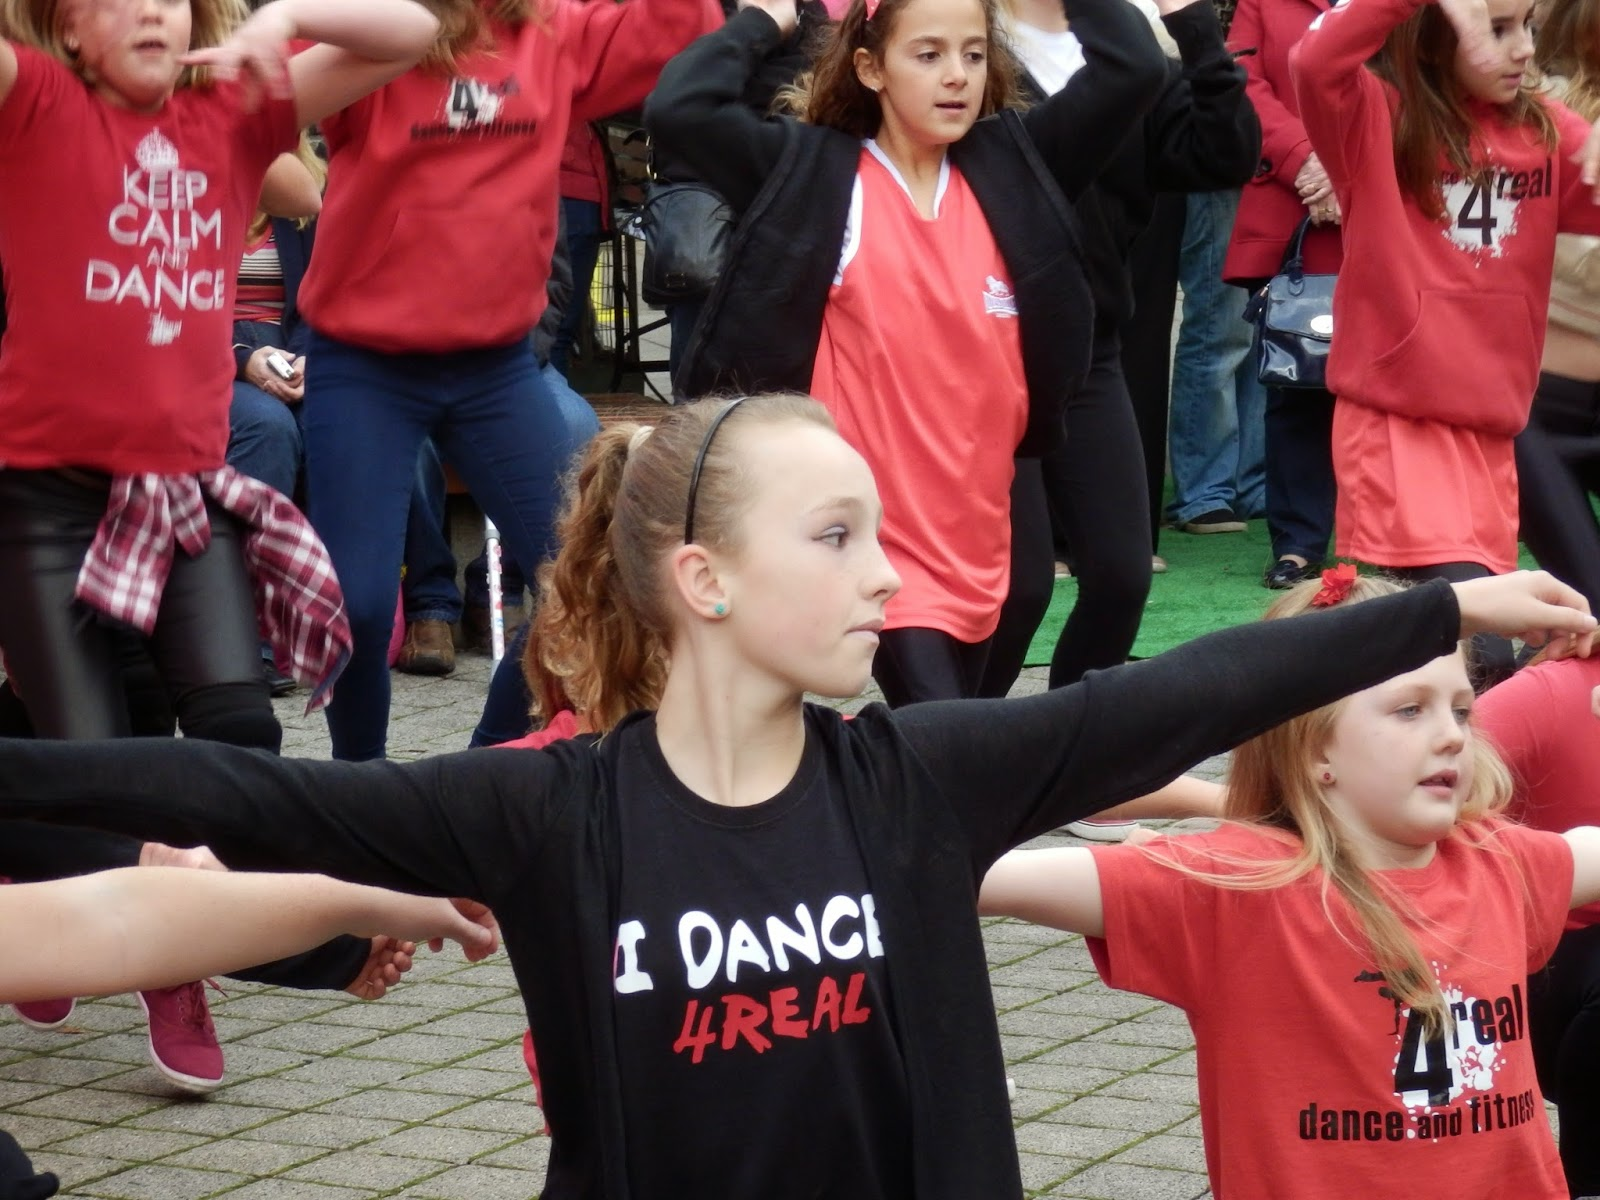 Children dancing in St.Austell square